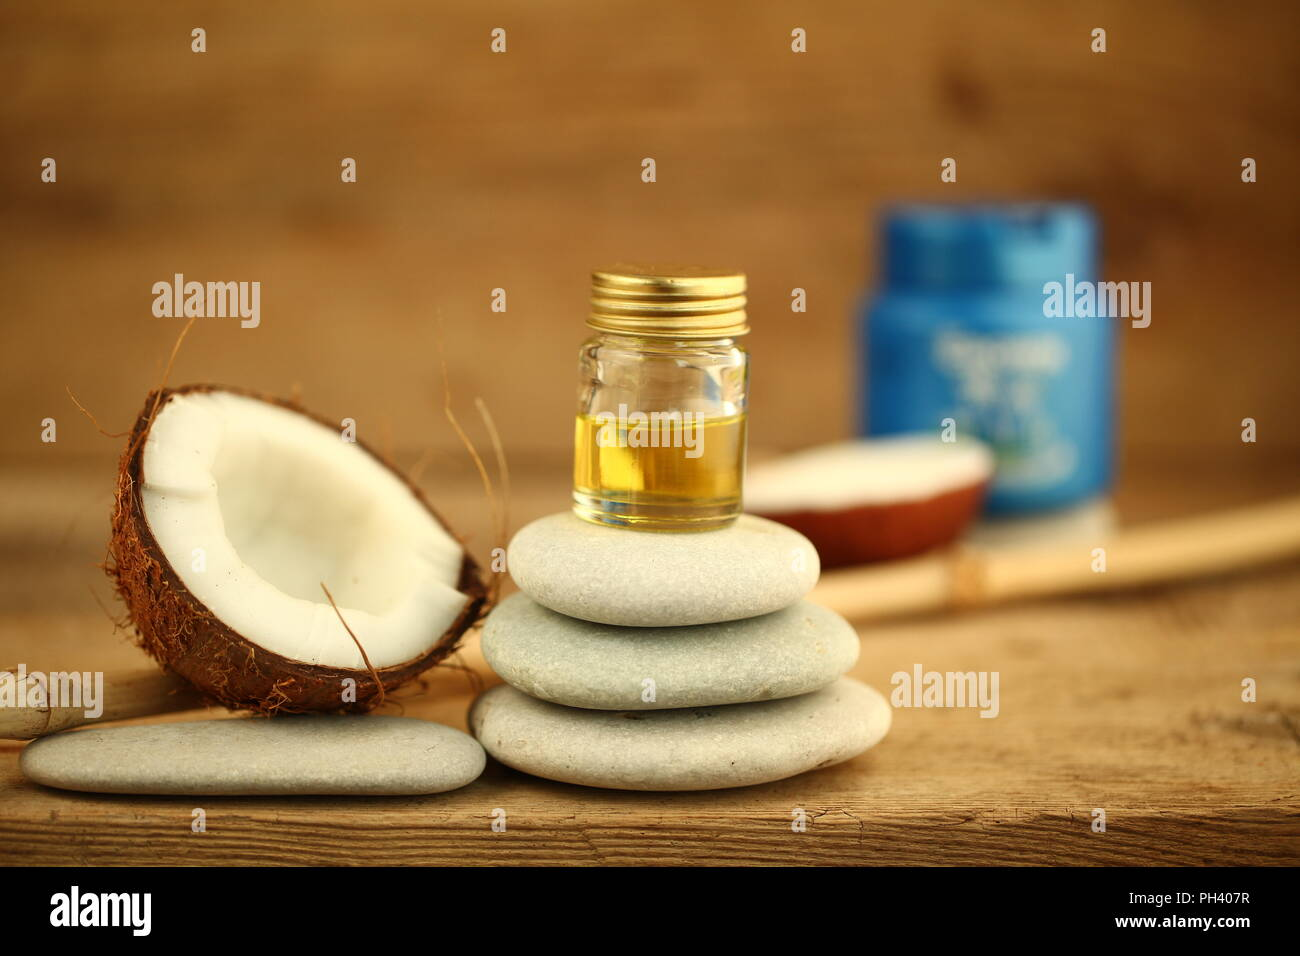 coconut oil for massage pebble candle Stock Photo